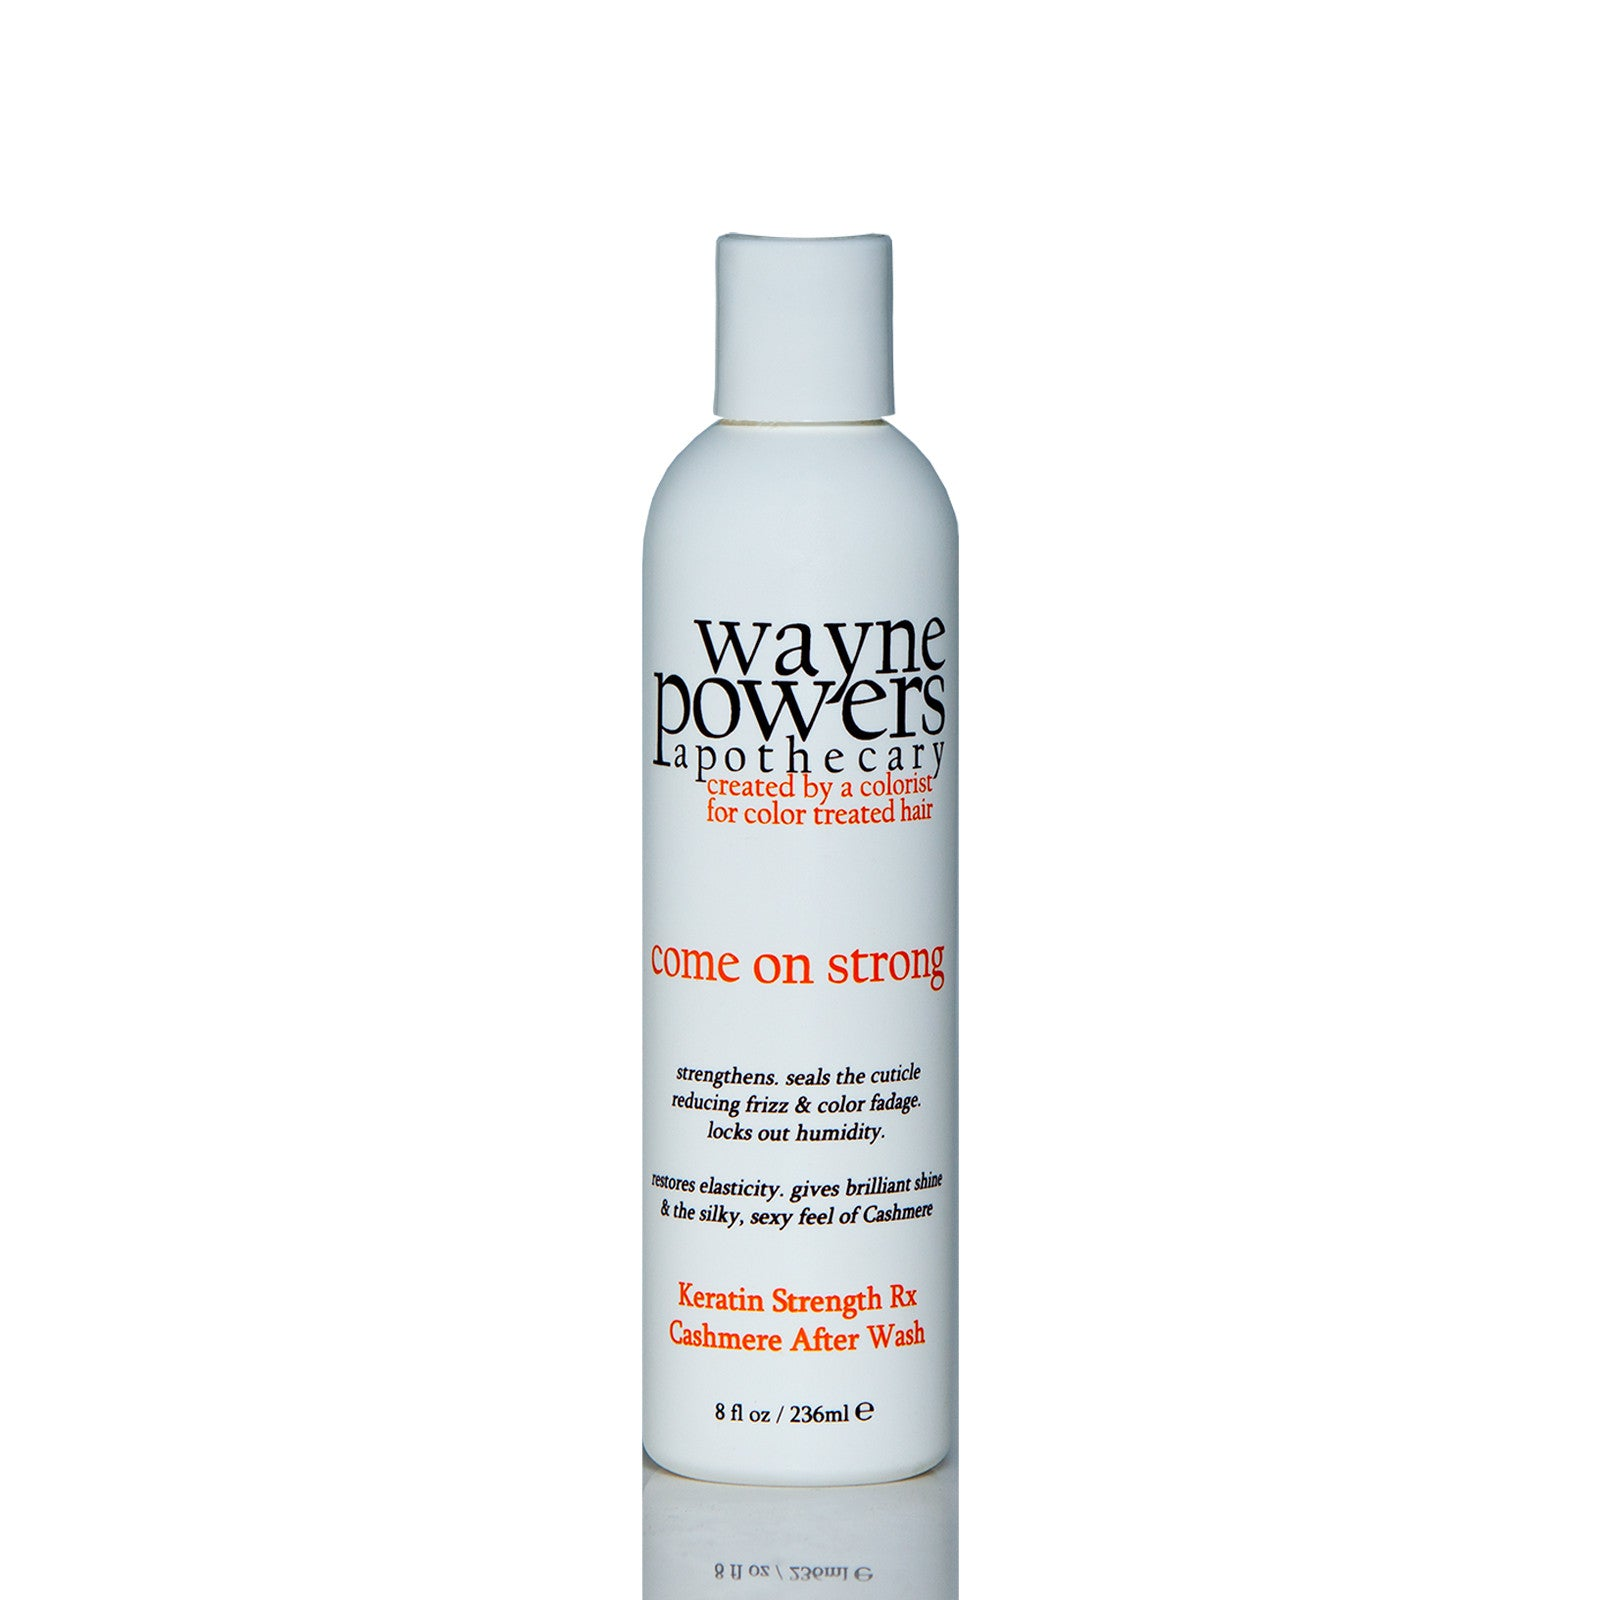 Come On Strong Keratin Strength Rx Cashmere After Wash by Wayne Powers Apothecary